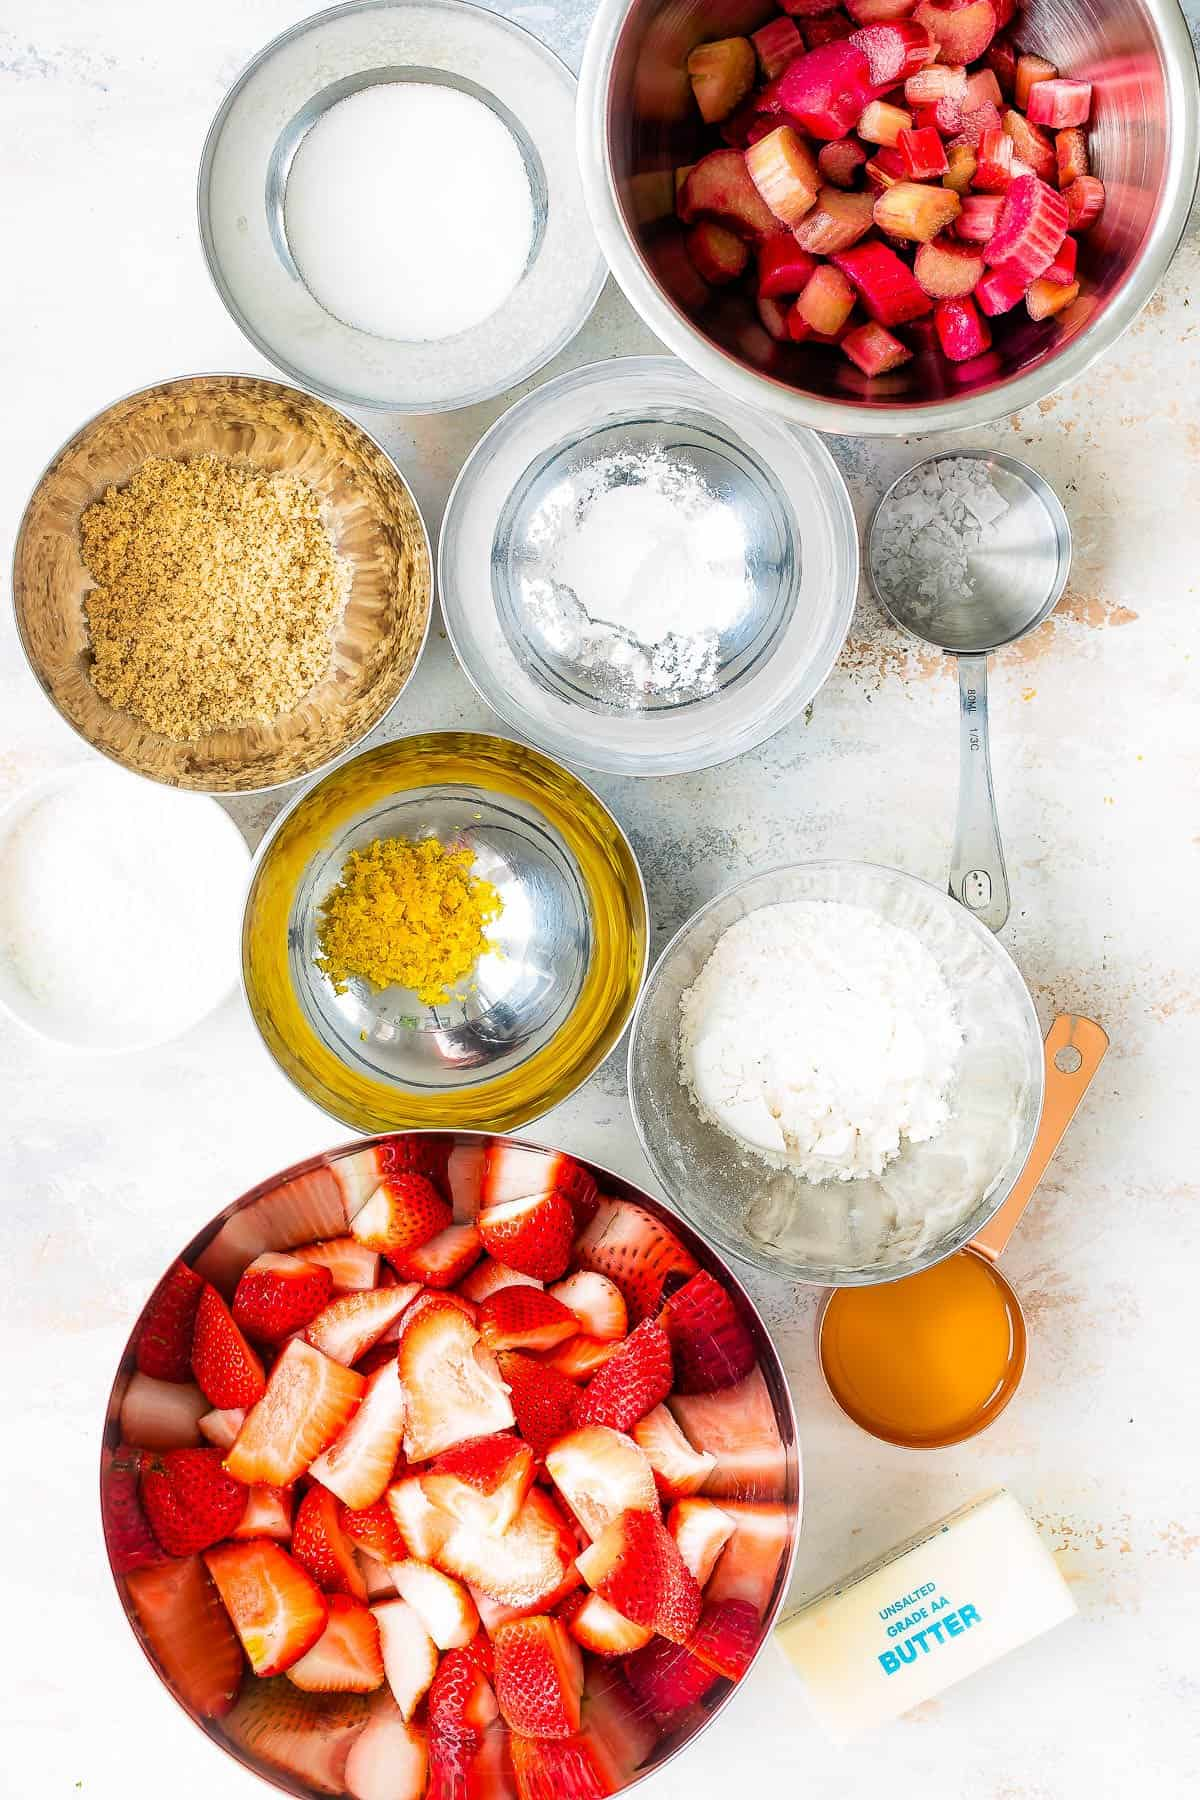 Ingredients for strawberry rhubarb crumble.